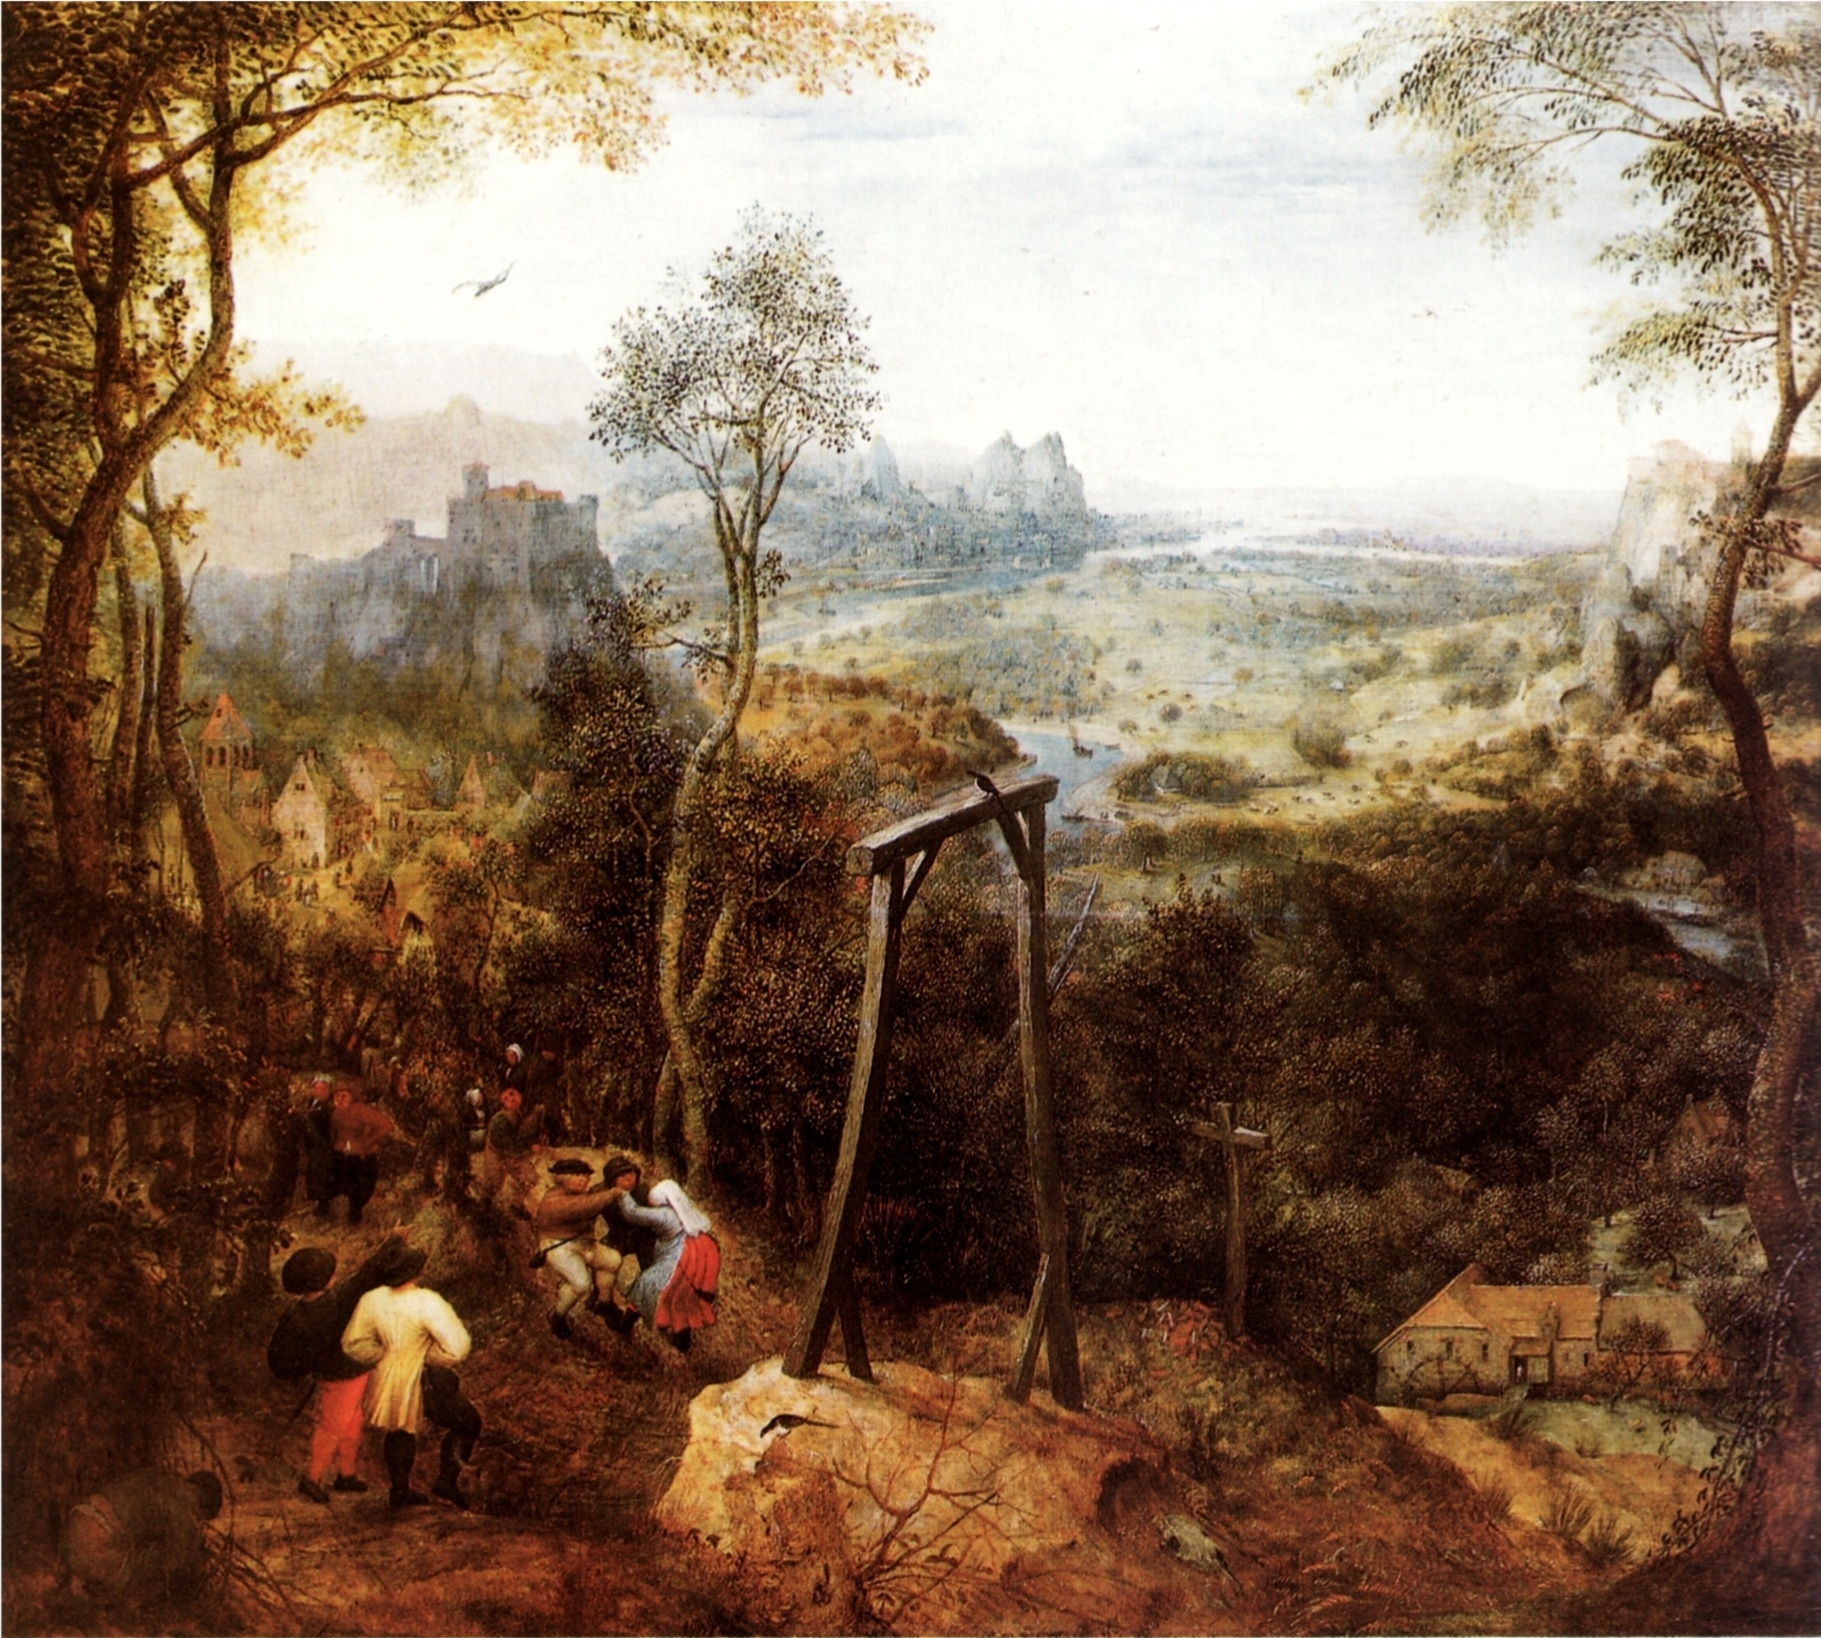 http://upload.wikimedia.org/wikipedia/commons/2/24/Pieter_Bruegel_the_Elder-_The_Magpie_on_the_Gallows.JPG